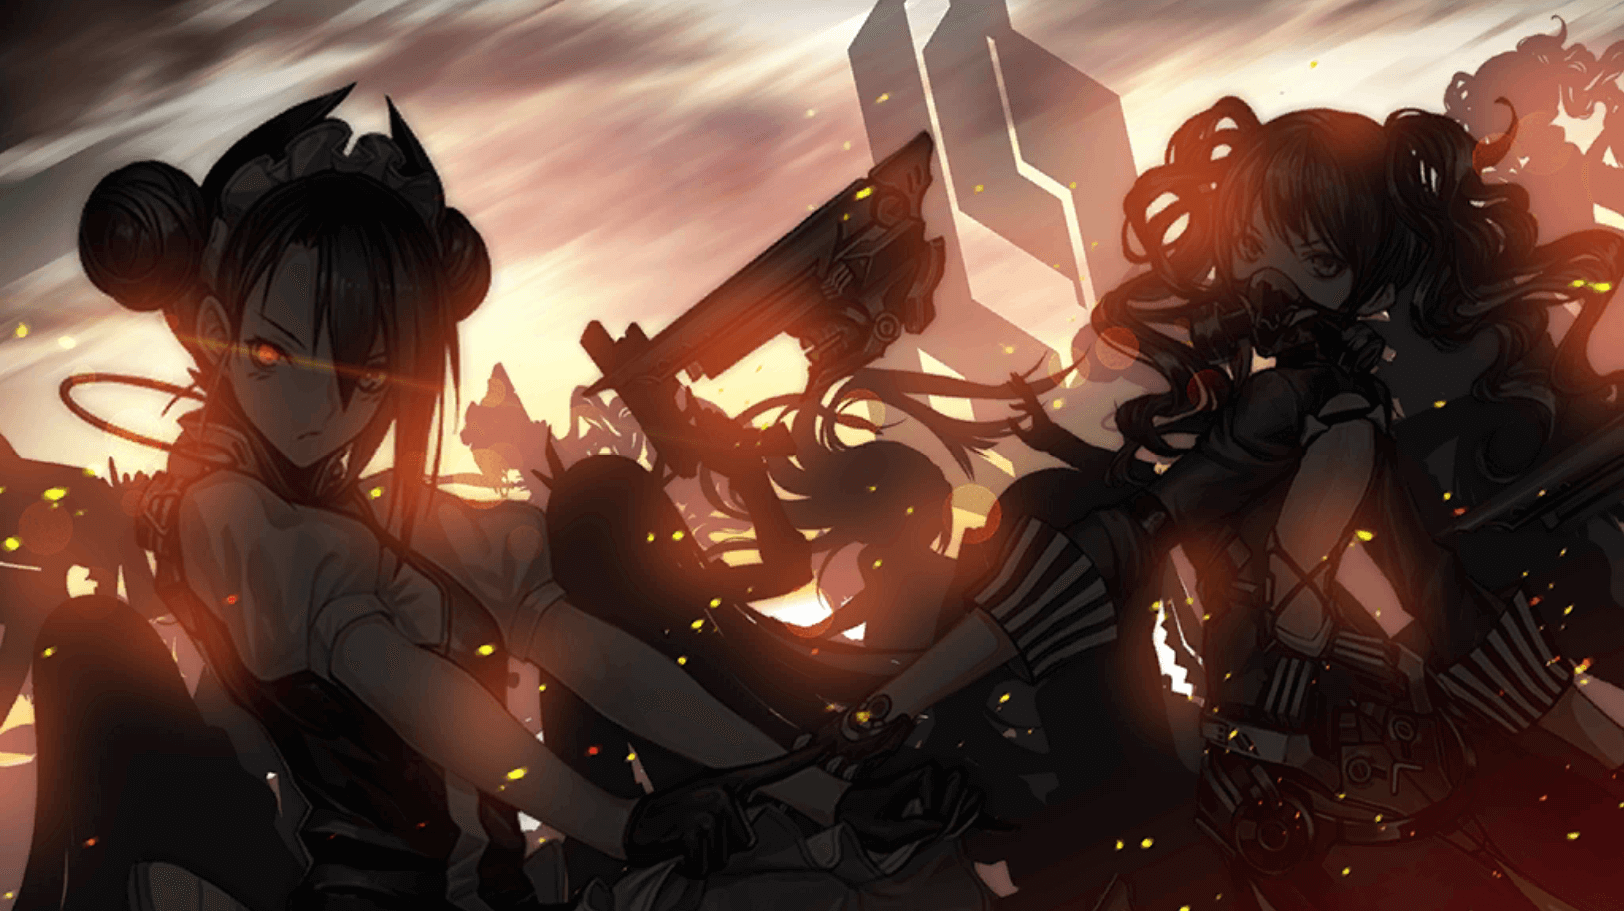 CG image of sangvis ferri ringleaders featuring Agent and Scarecrow